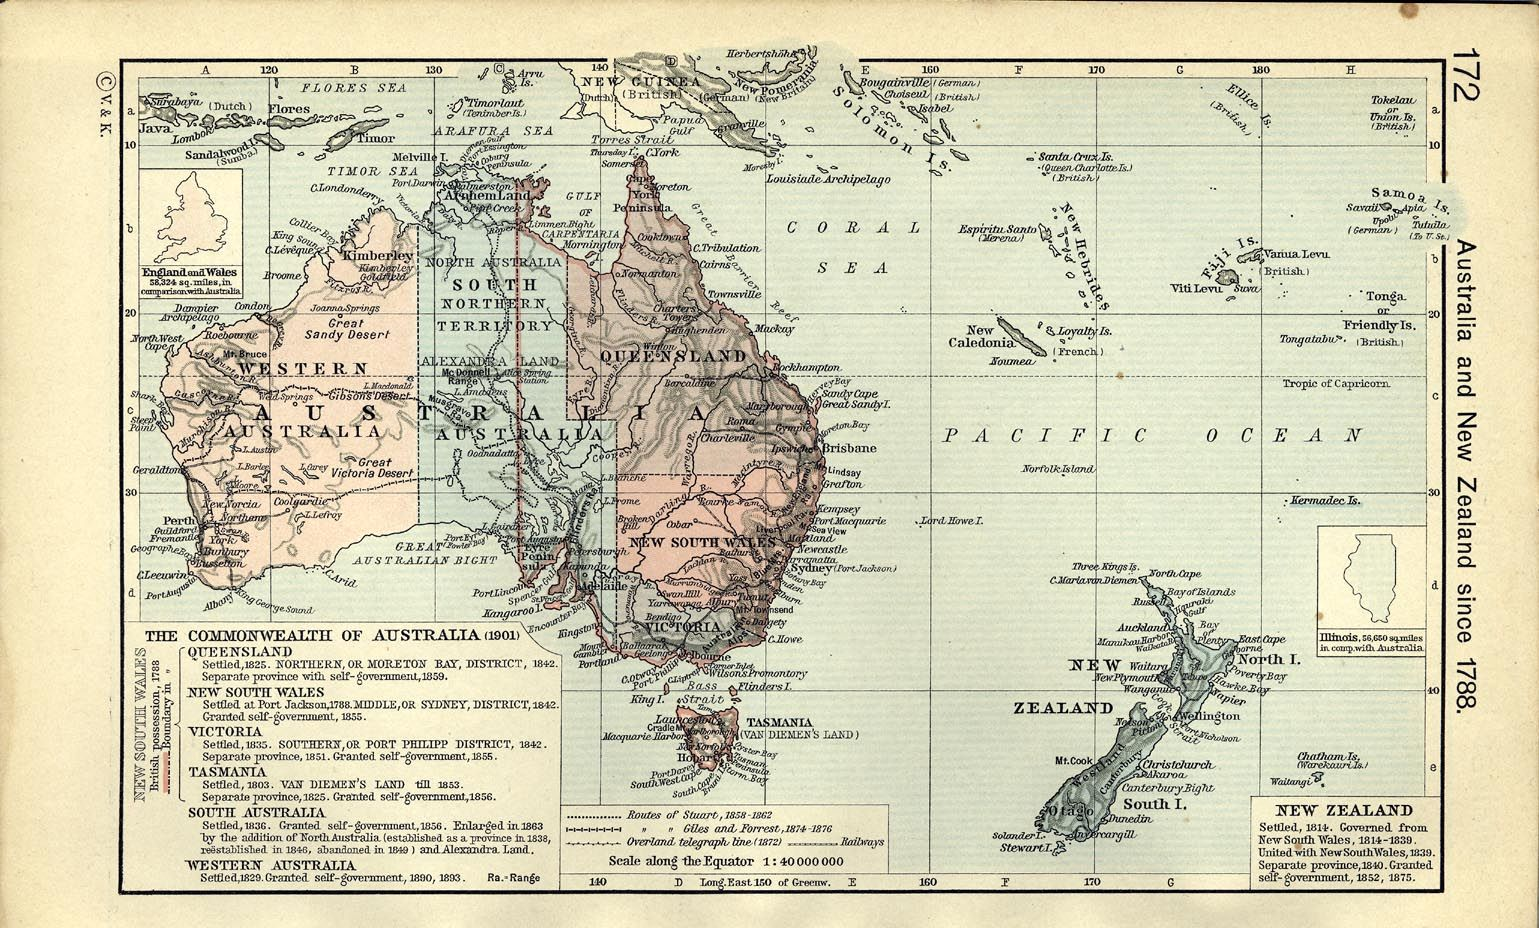 Map Of Australia 1901.Australia And New Zealand 1901 Anything New Zealand Australia